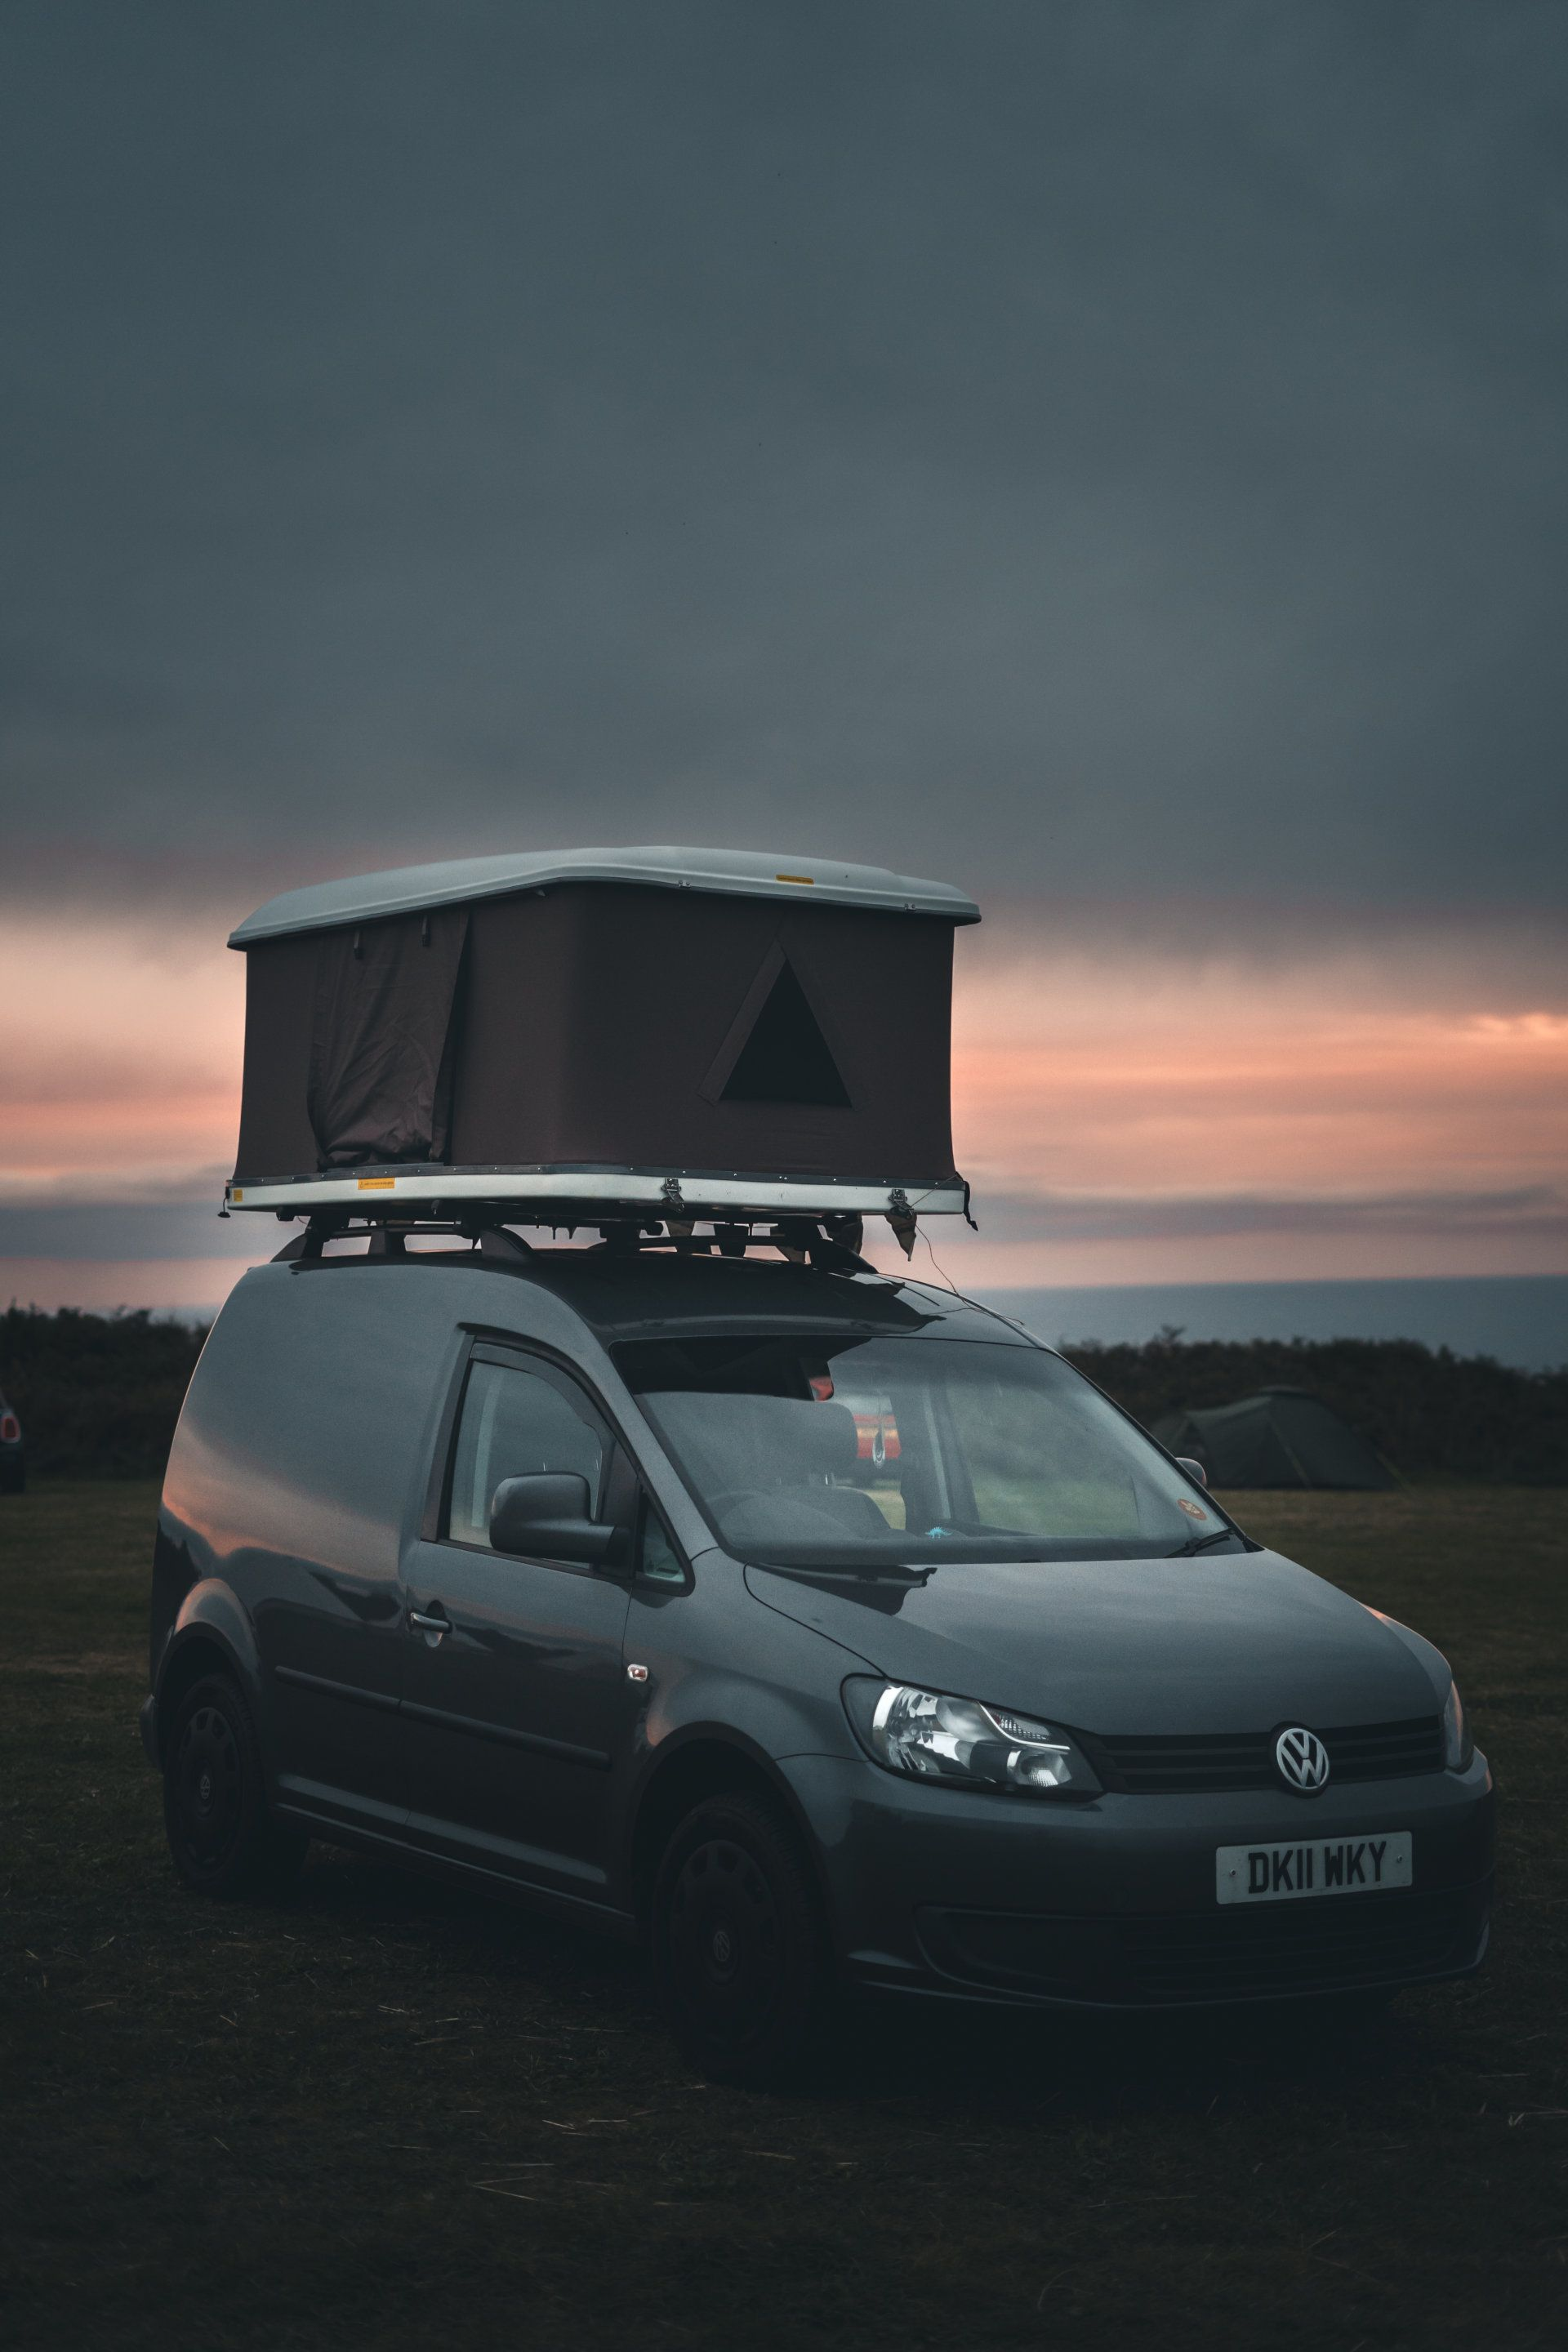 Our Good Friends At Bad Wolf Horizon Badwolfhorizon Instagram Took A Trip To Cornwall With Our Hard Shell Expedition Roof T Roof Tent Roof Top Tent Tent